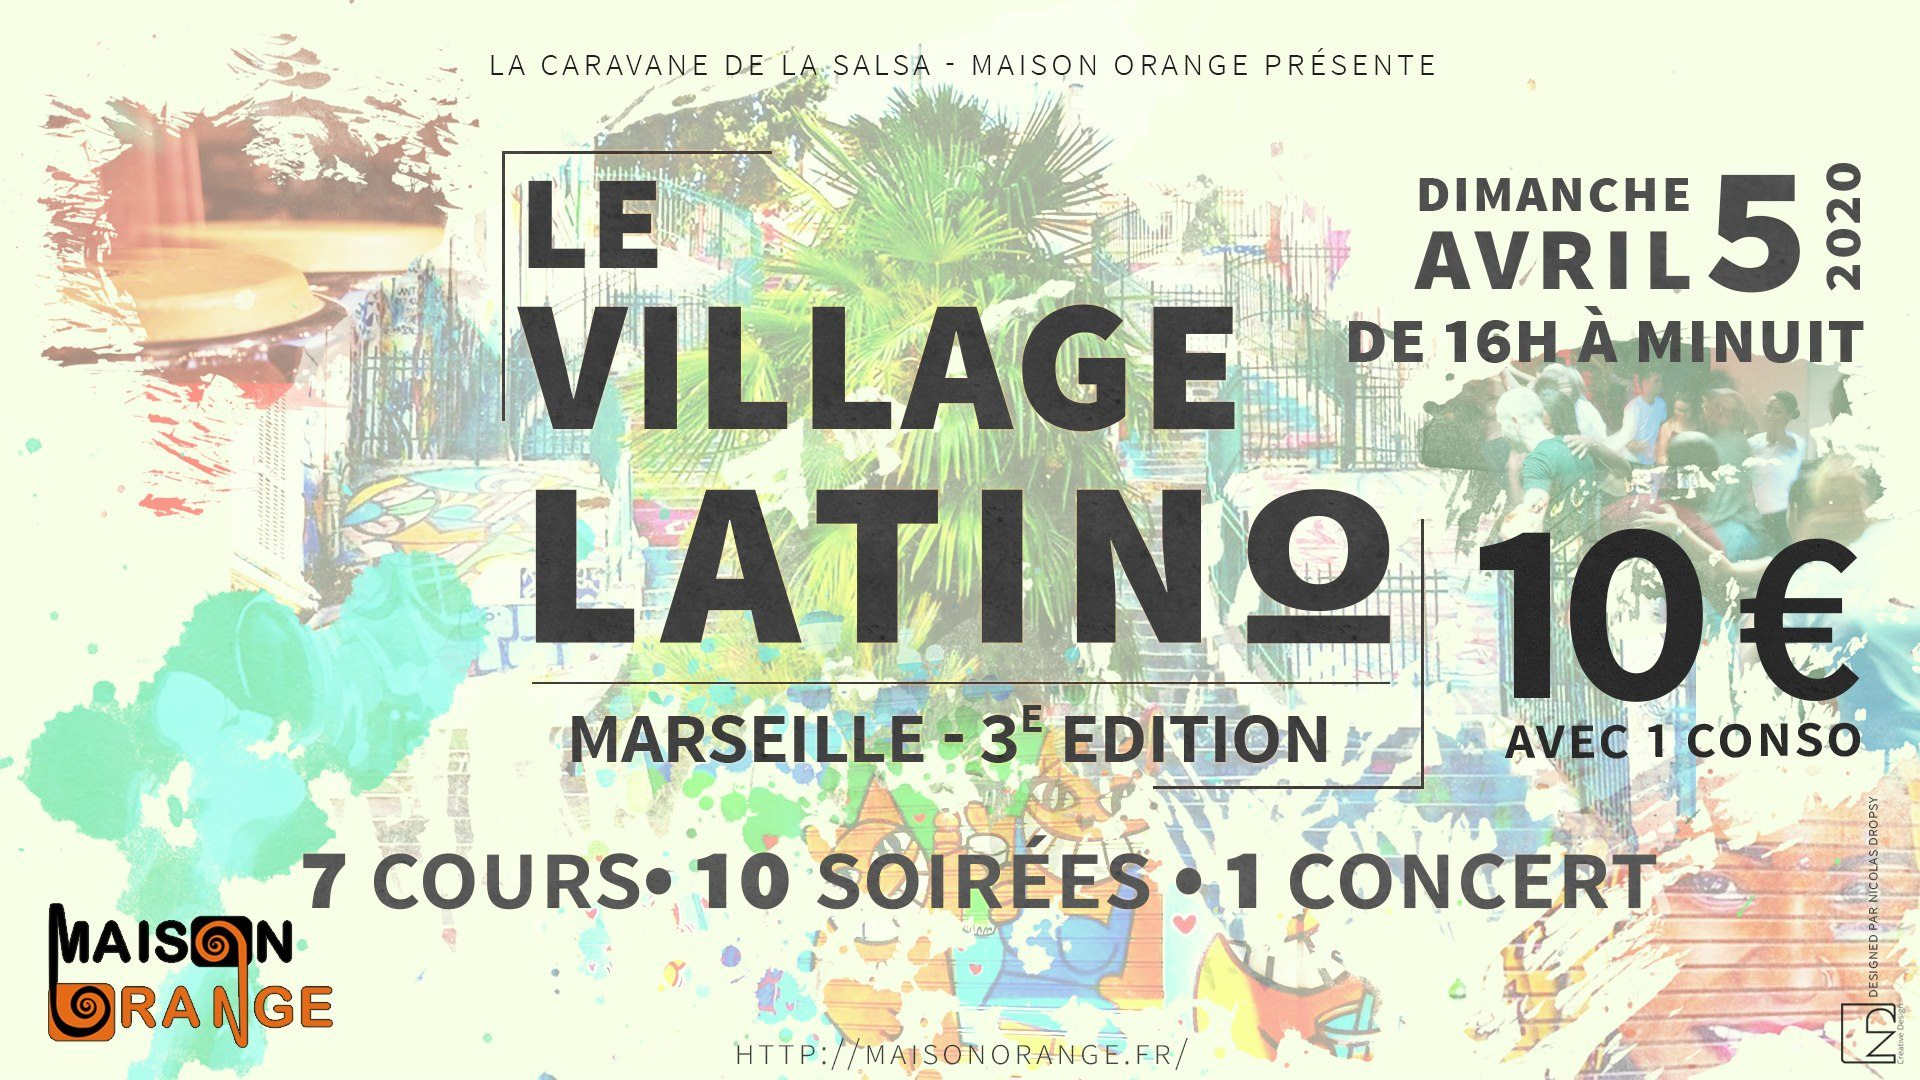 https://the-place-to-be.fr/wp-content/uploads/2020/02/village-latino-marseille-2020-cours-julien-13006-marseille.jpg